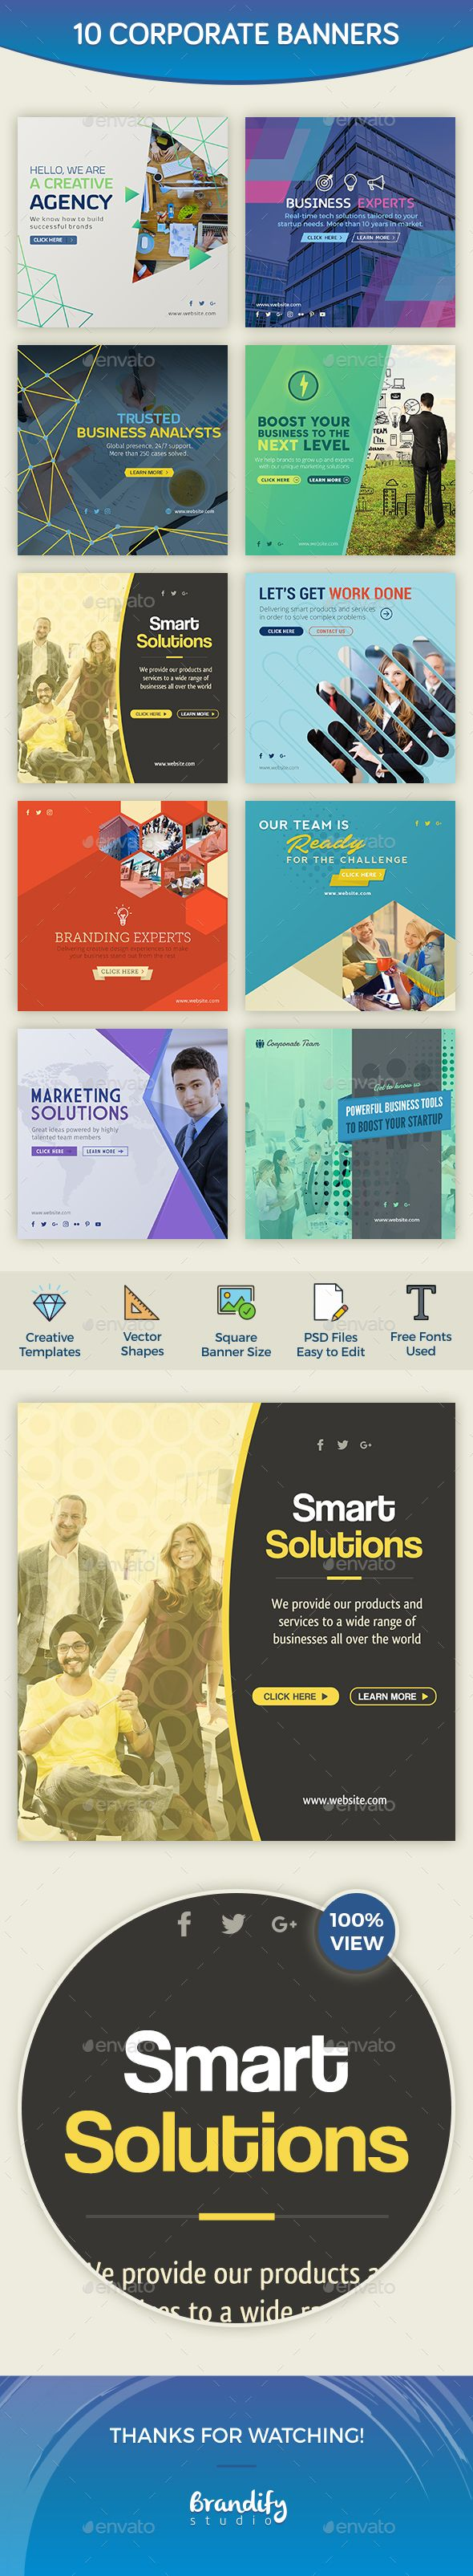 25+ great ideas about Ad design on Pinterest